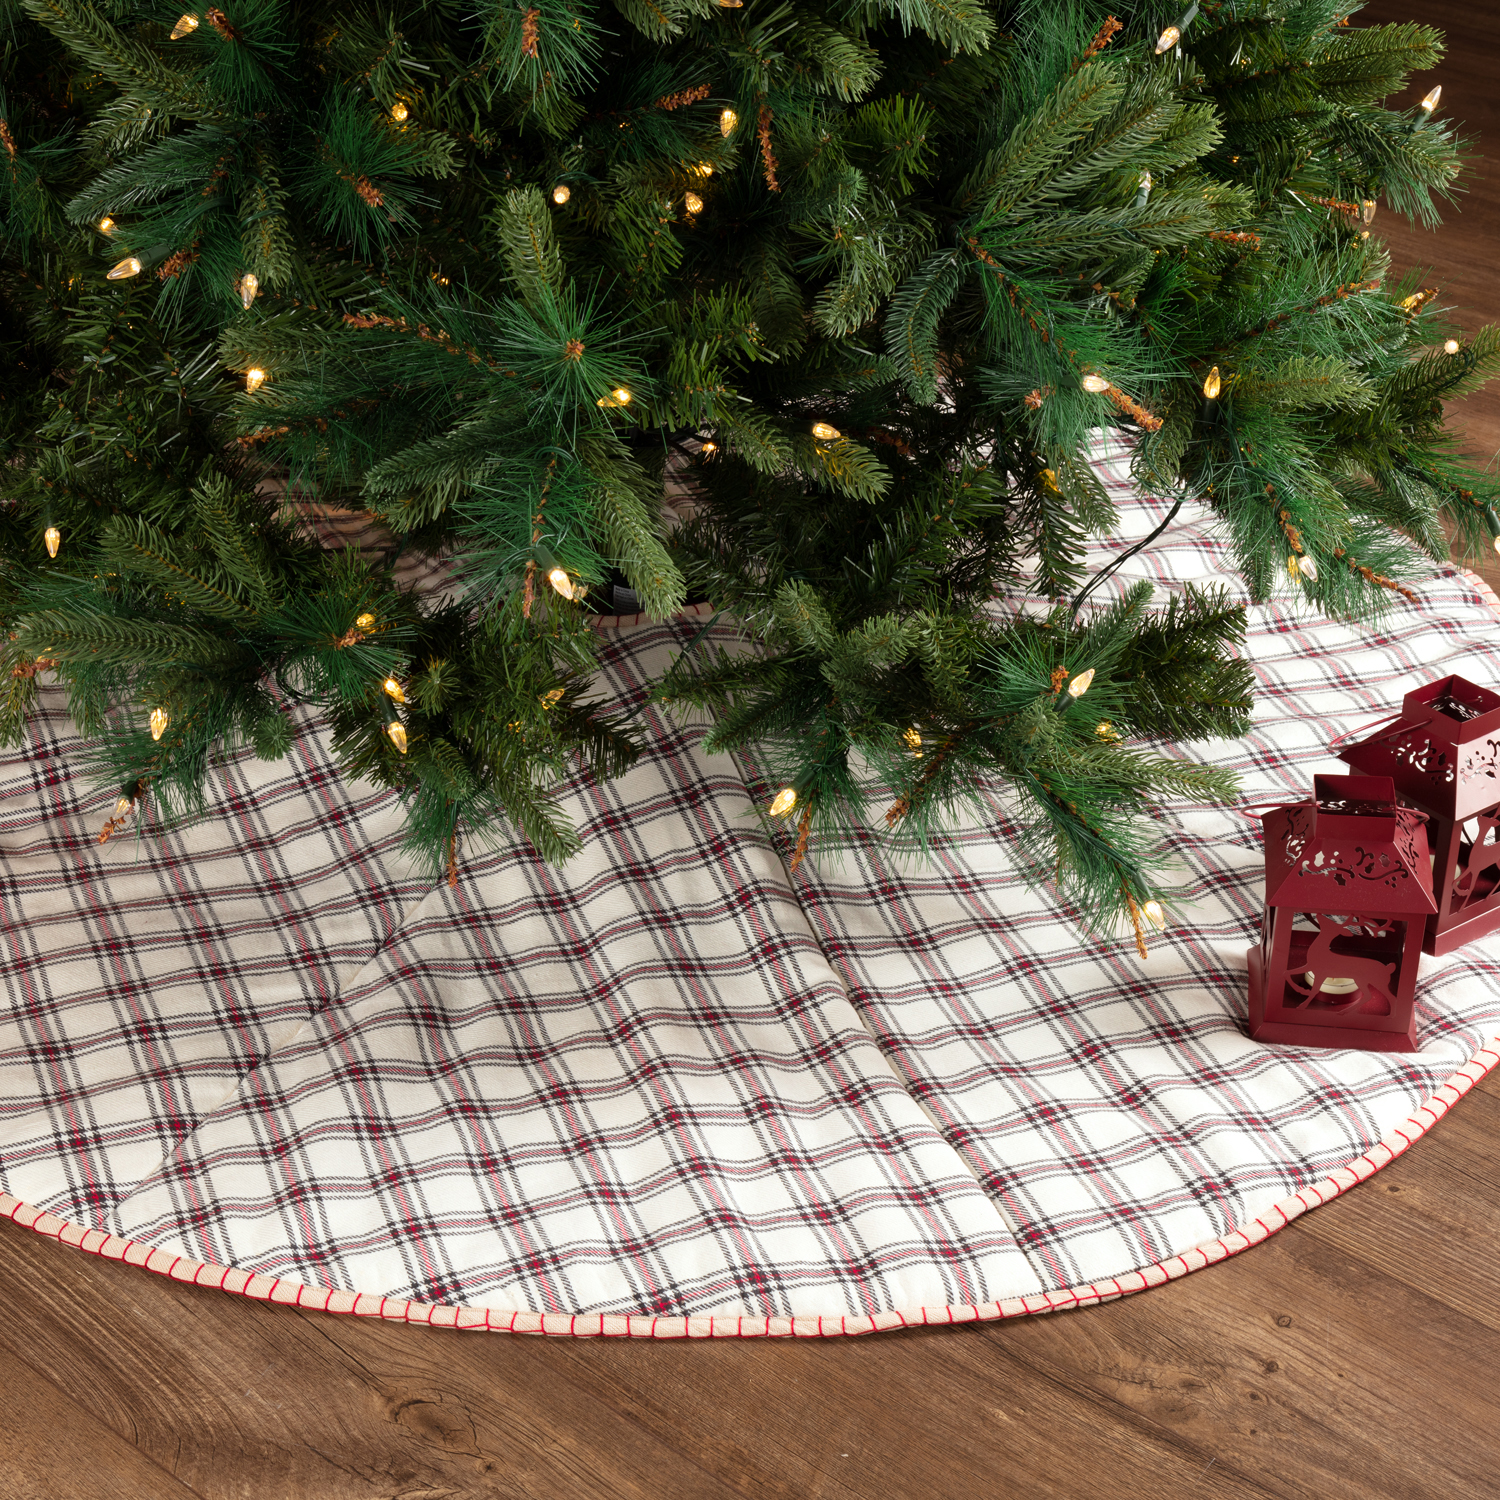 Ivory White Farmhouse Christmas Decor Amory Cotton Chambray Plaid 60 Diameter Tree Skirt Walmart Com Walmart Com